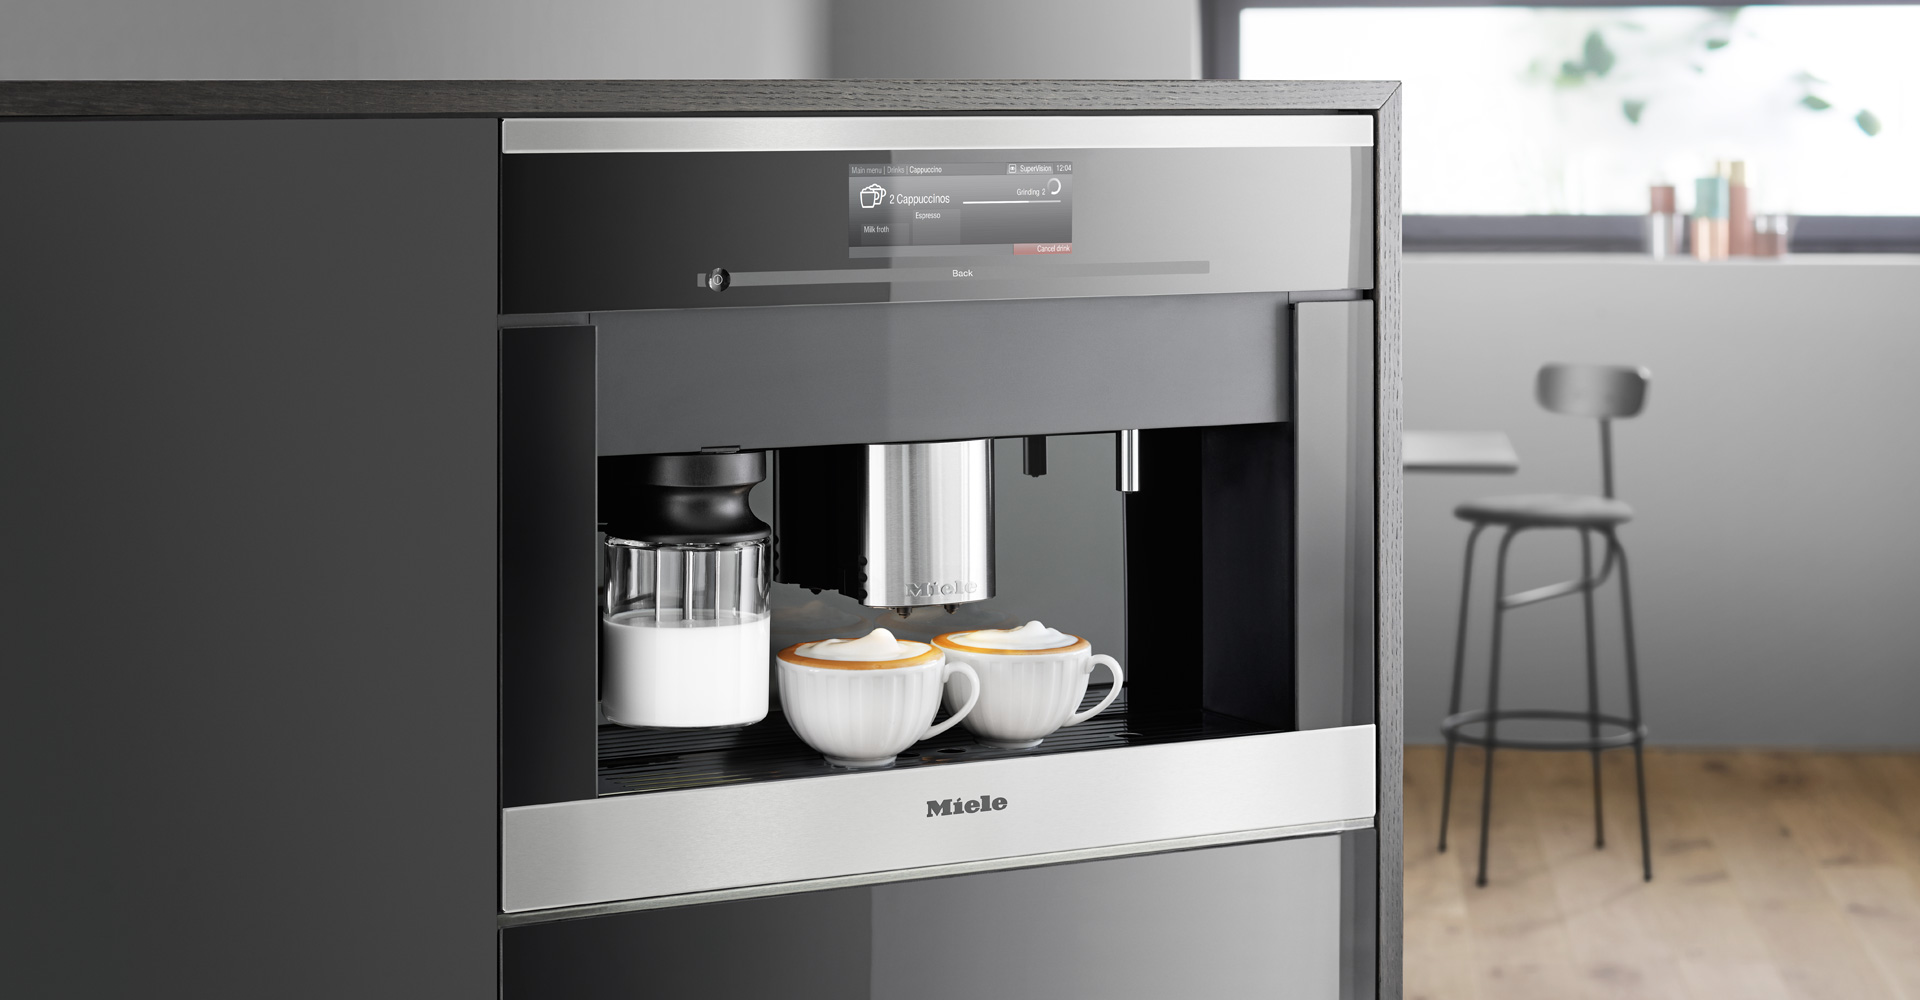 We checkout and review some of the top Built-in and integrated coffee machines from popular brands such as SMEG, NEF and Whirlpool.